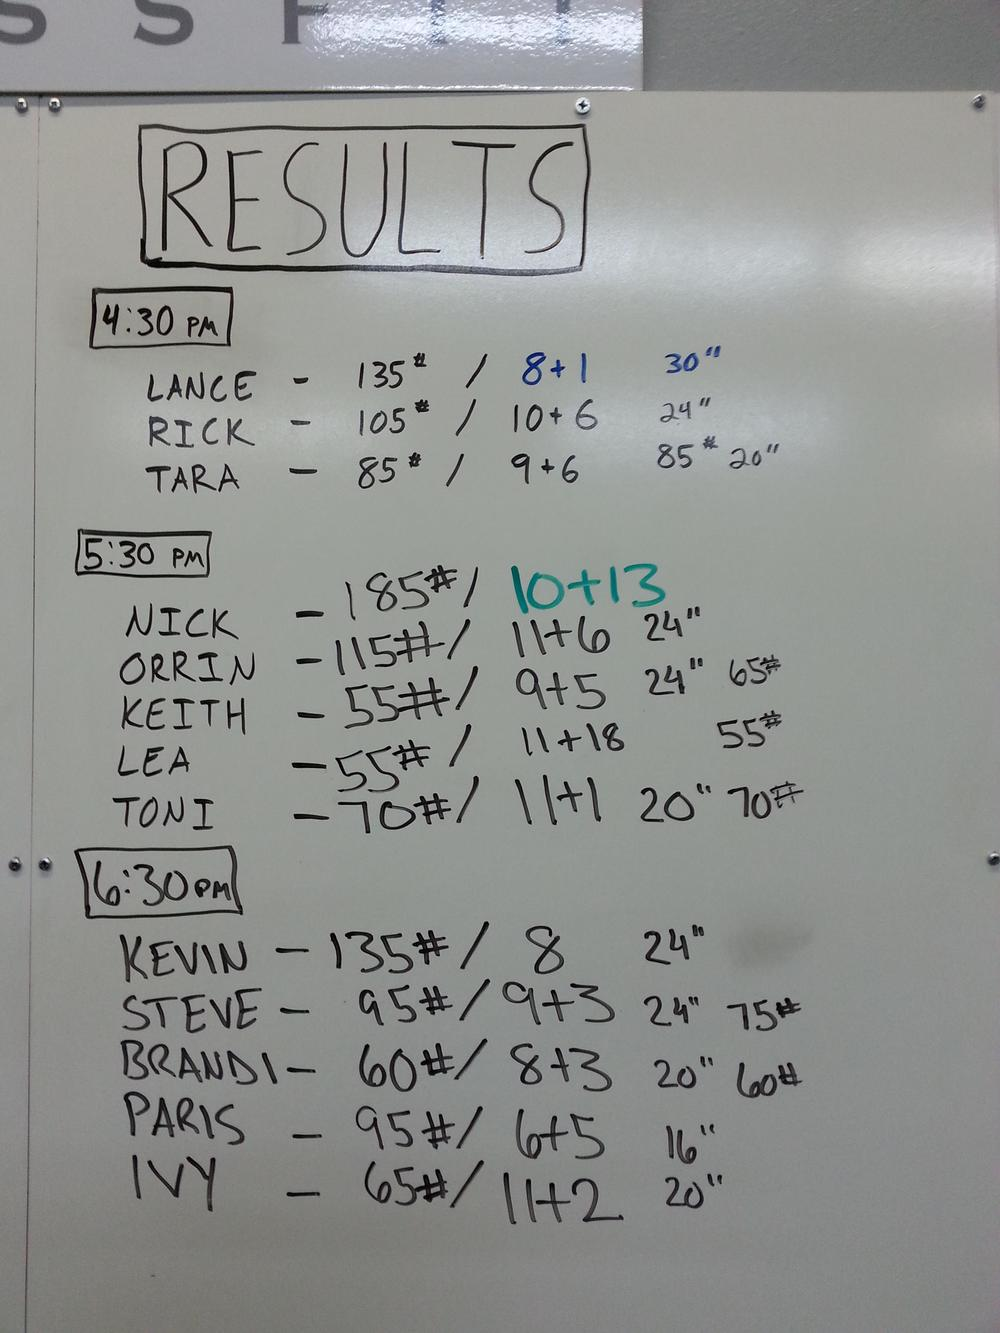 Results from 9/26!